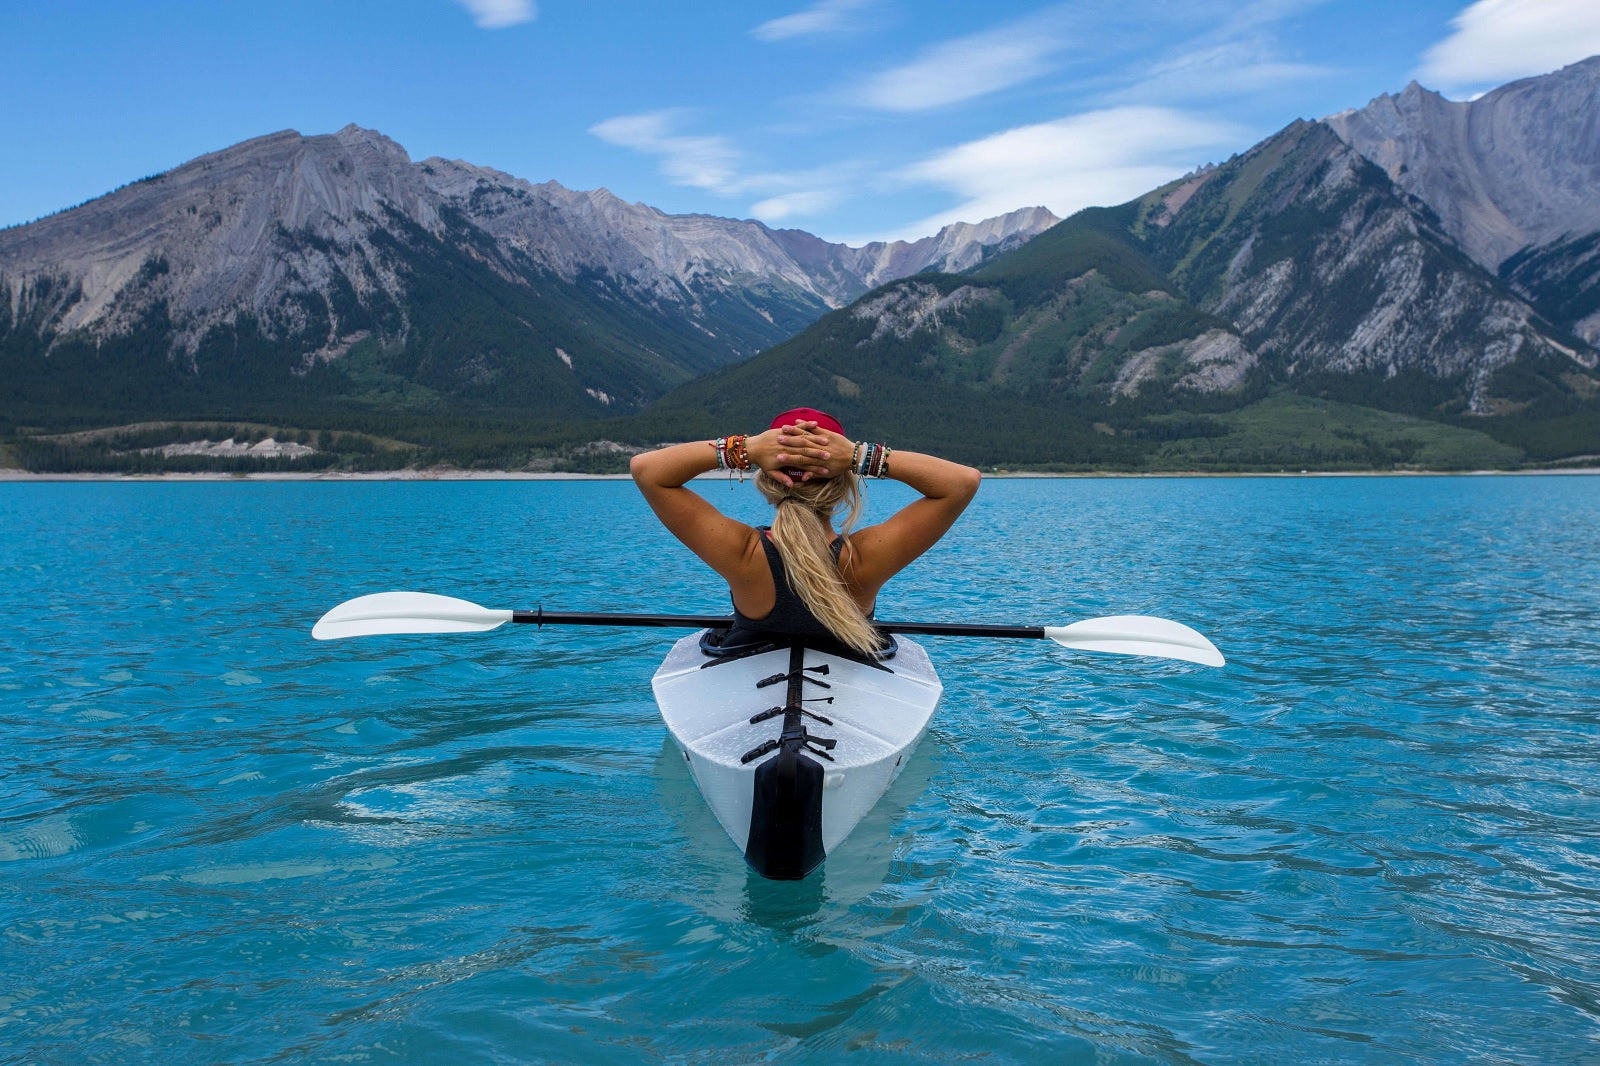 girl in white kayak on blue water with mountains in the distance